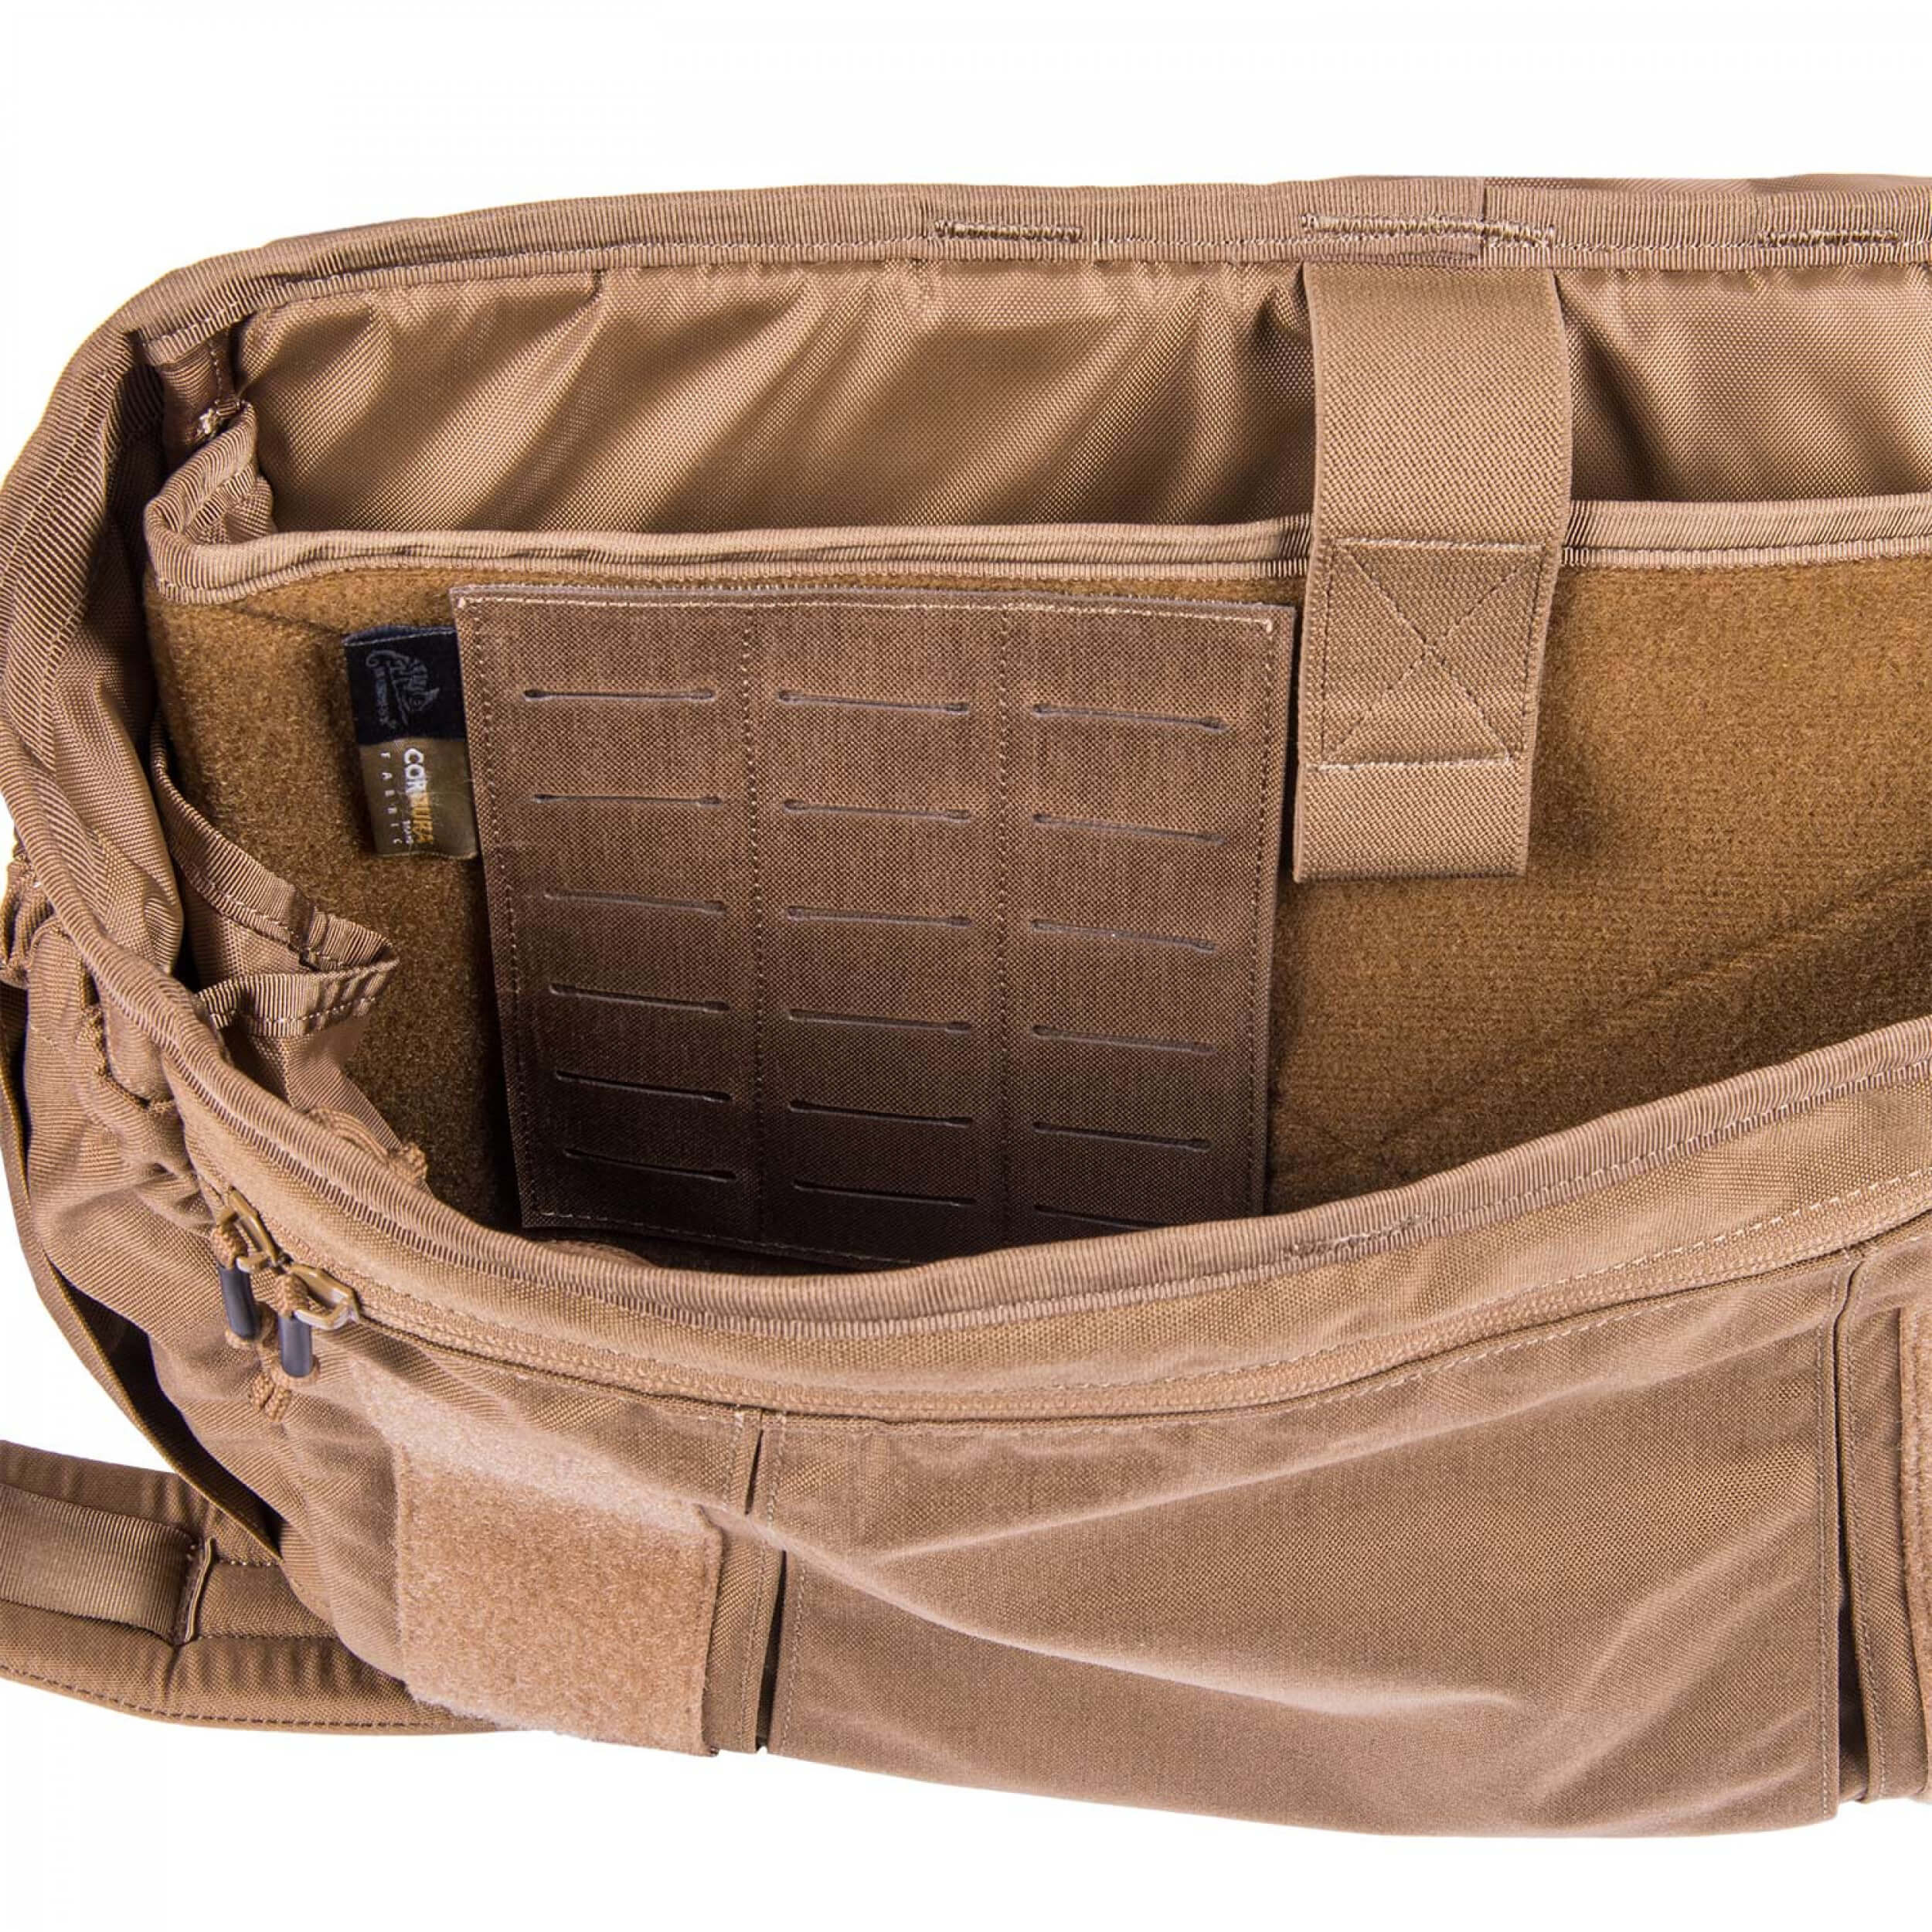 Helikon-Tex Molle Adapter Insert 3 -Cordura- Coyote